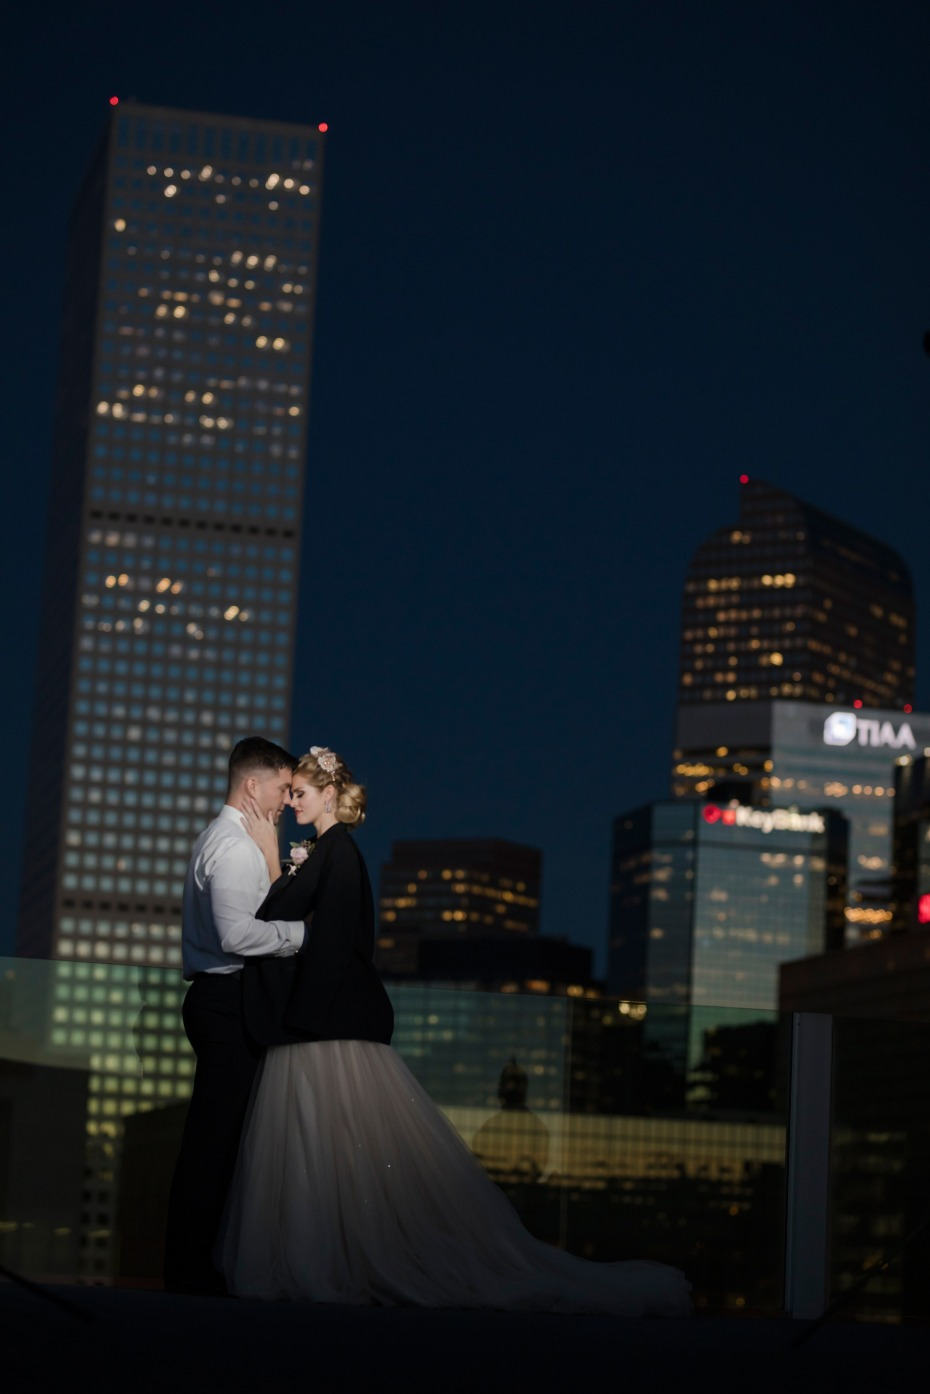 sweet bride and groom photos on the rooftop